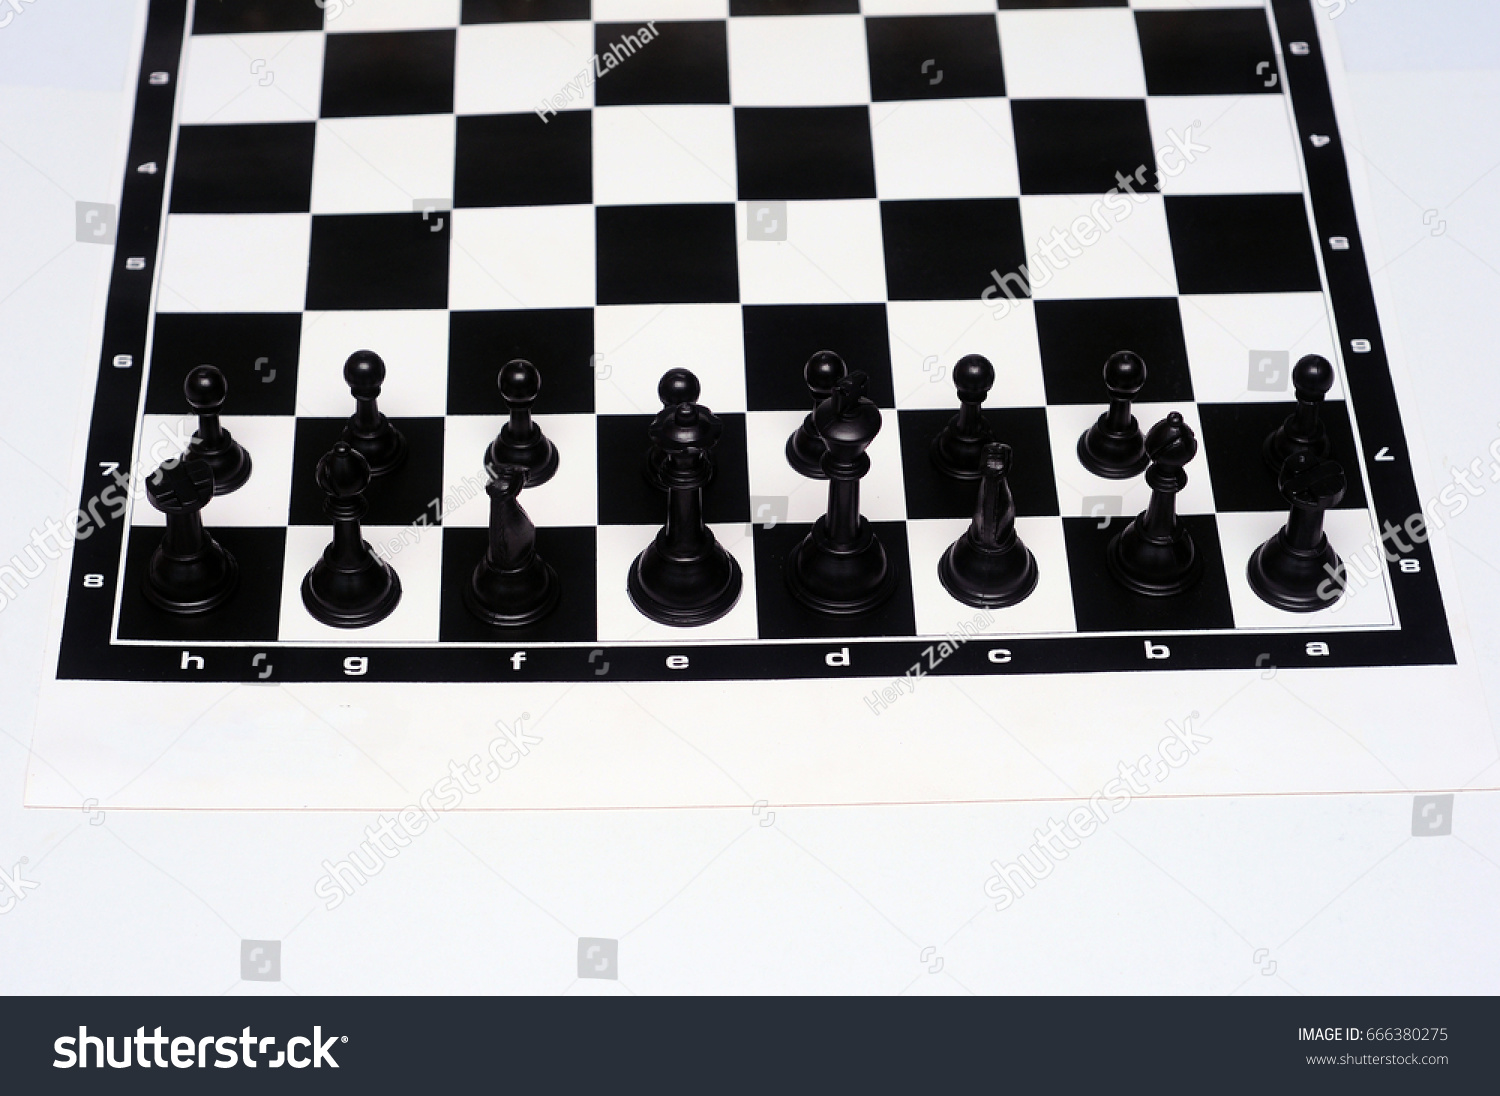 Chess Pieces Board Layout Miscellaneous Stock Image 666380275